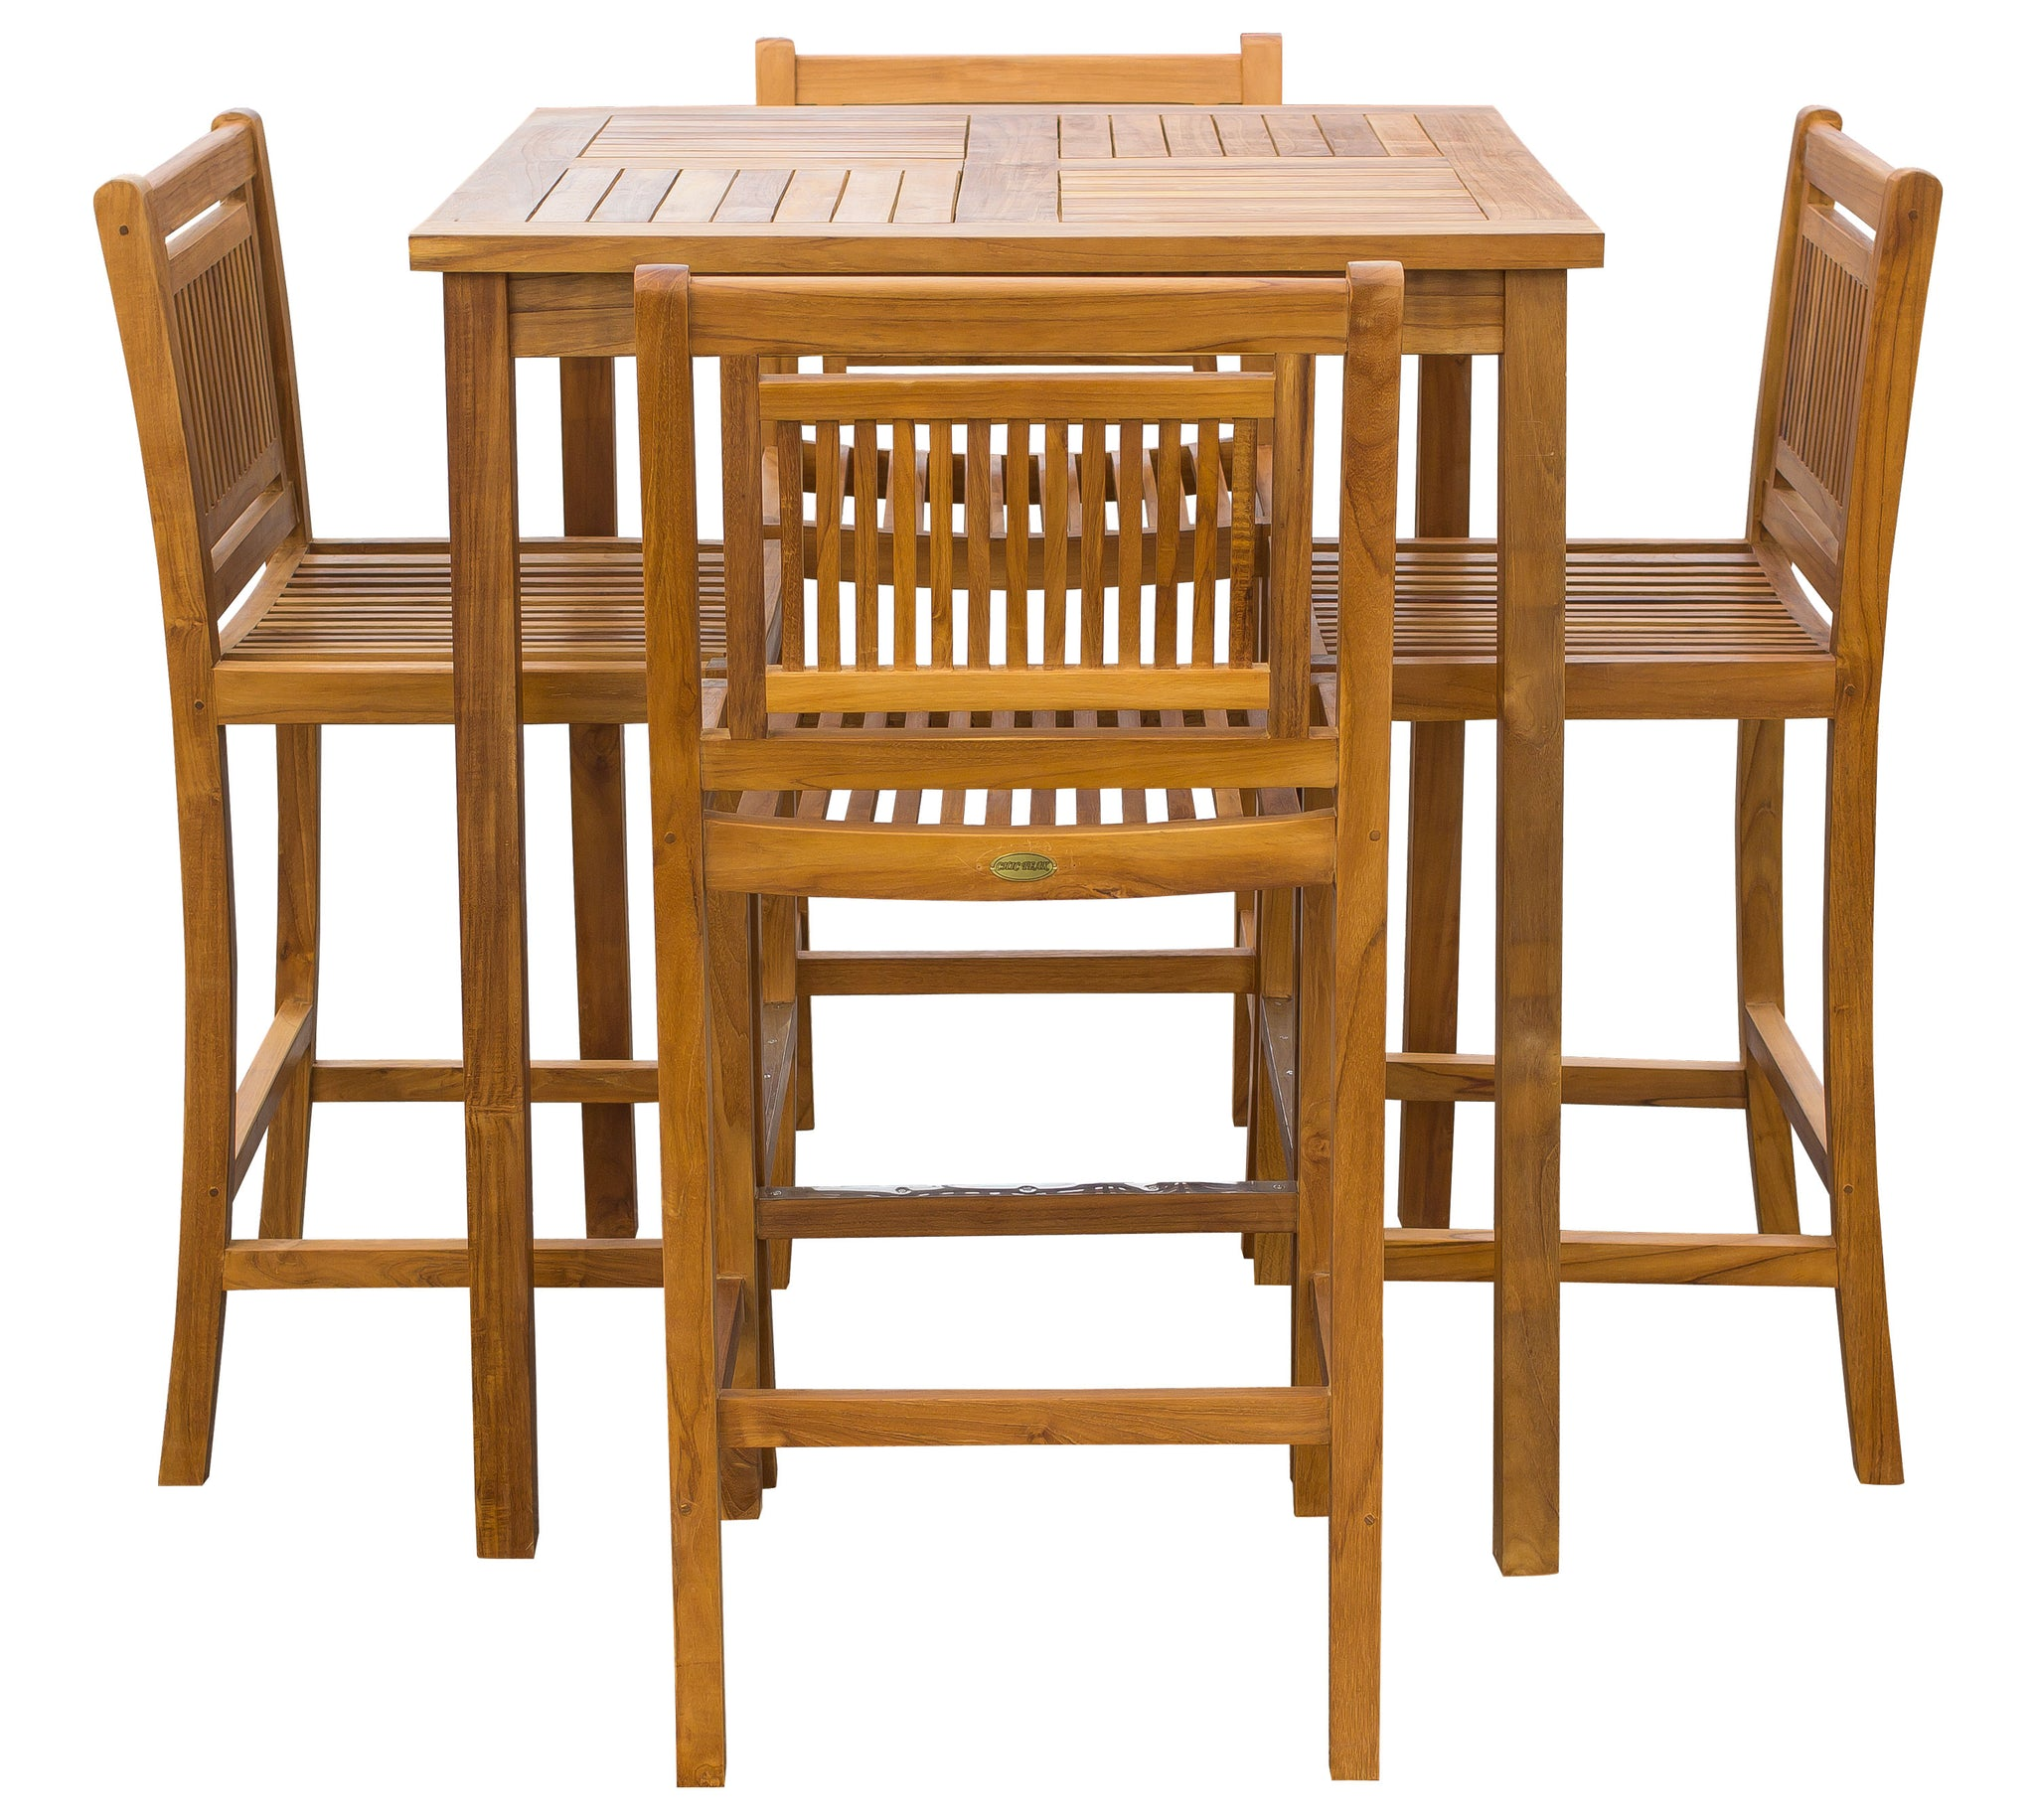 Astonishing 5 Piece Teak Wood Maldives Patio Bistro Bar Set With 35 Theyellowbook Wood Chair Design Ideas Theyellowbookinfo